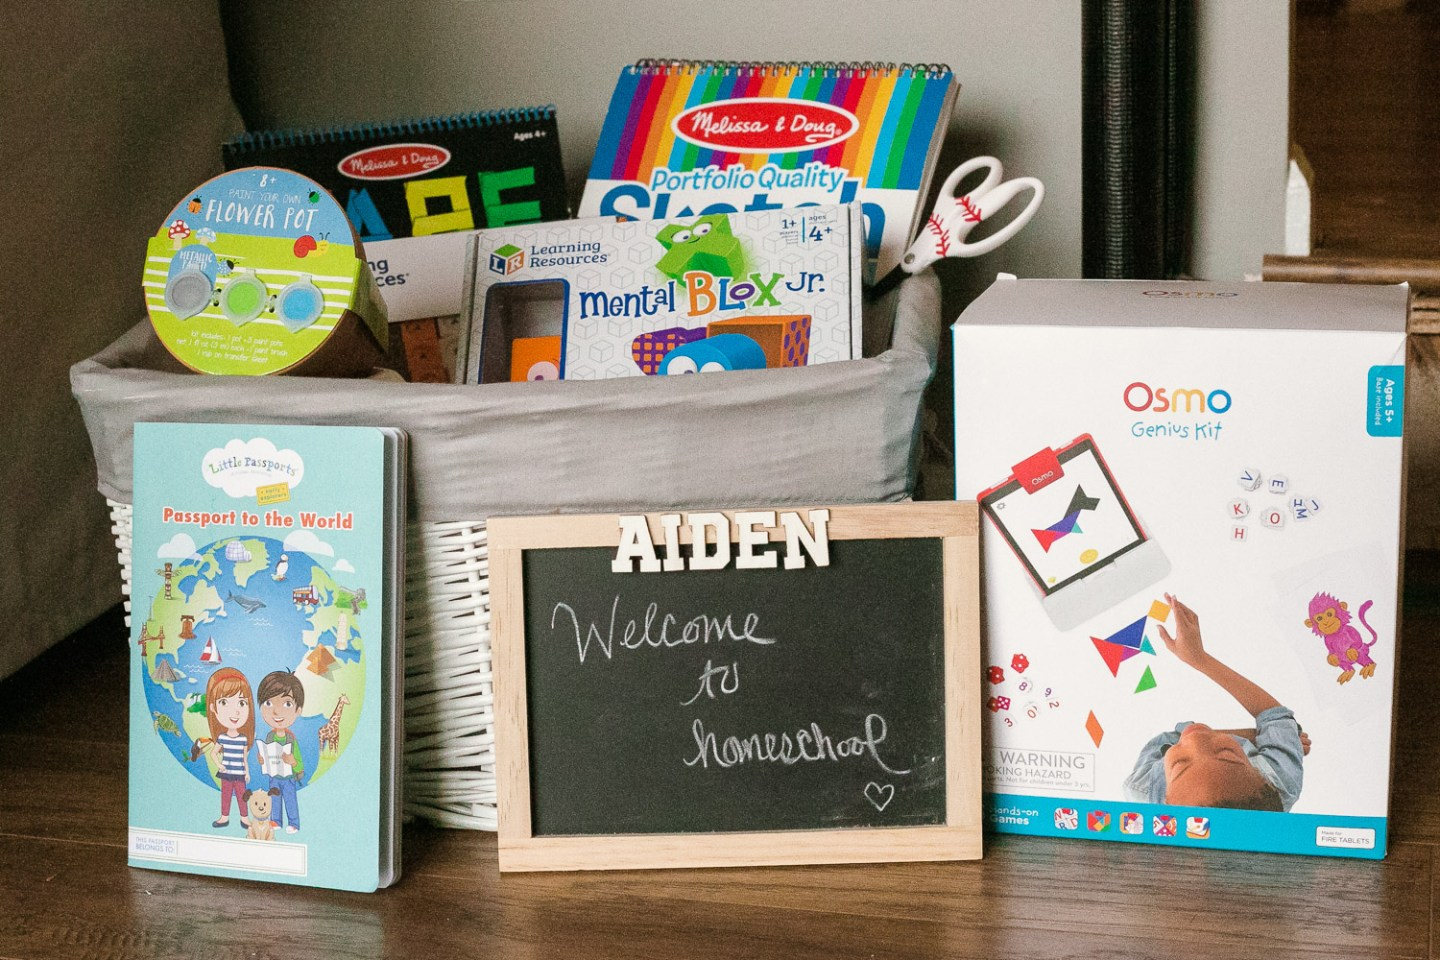 7 Essentials to Create a Kids Emergency Kit to Help Get Through Covid-19 at Home